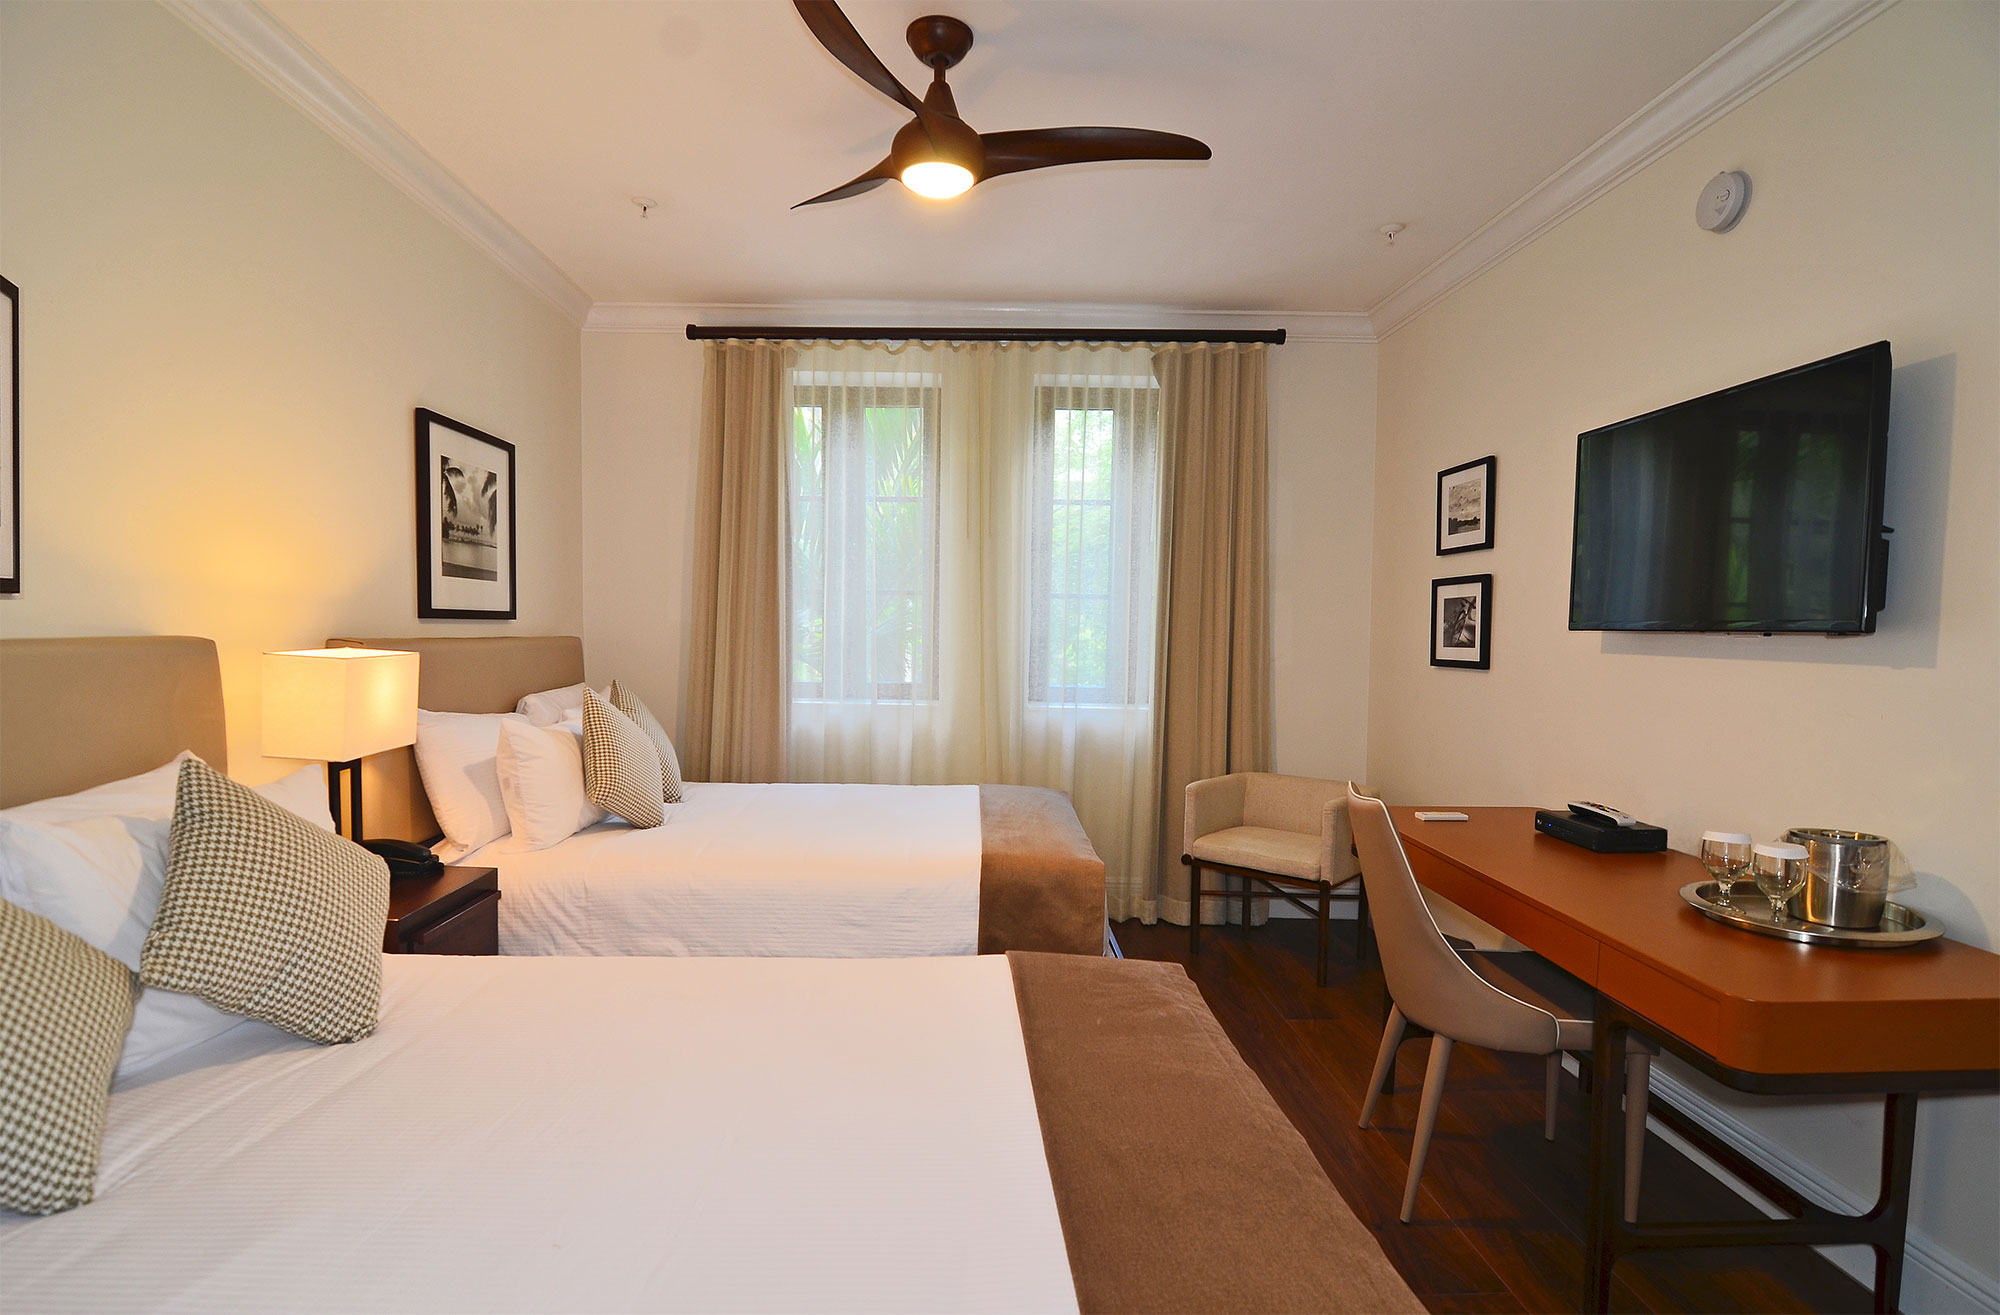 Hotel St. Michel Standard Double rooms